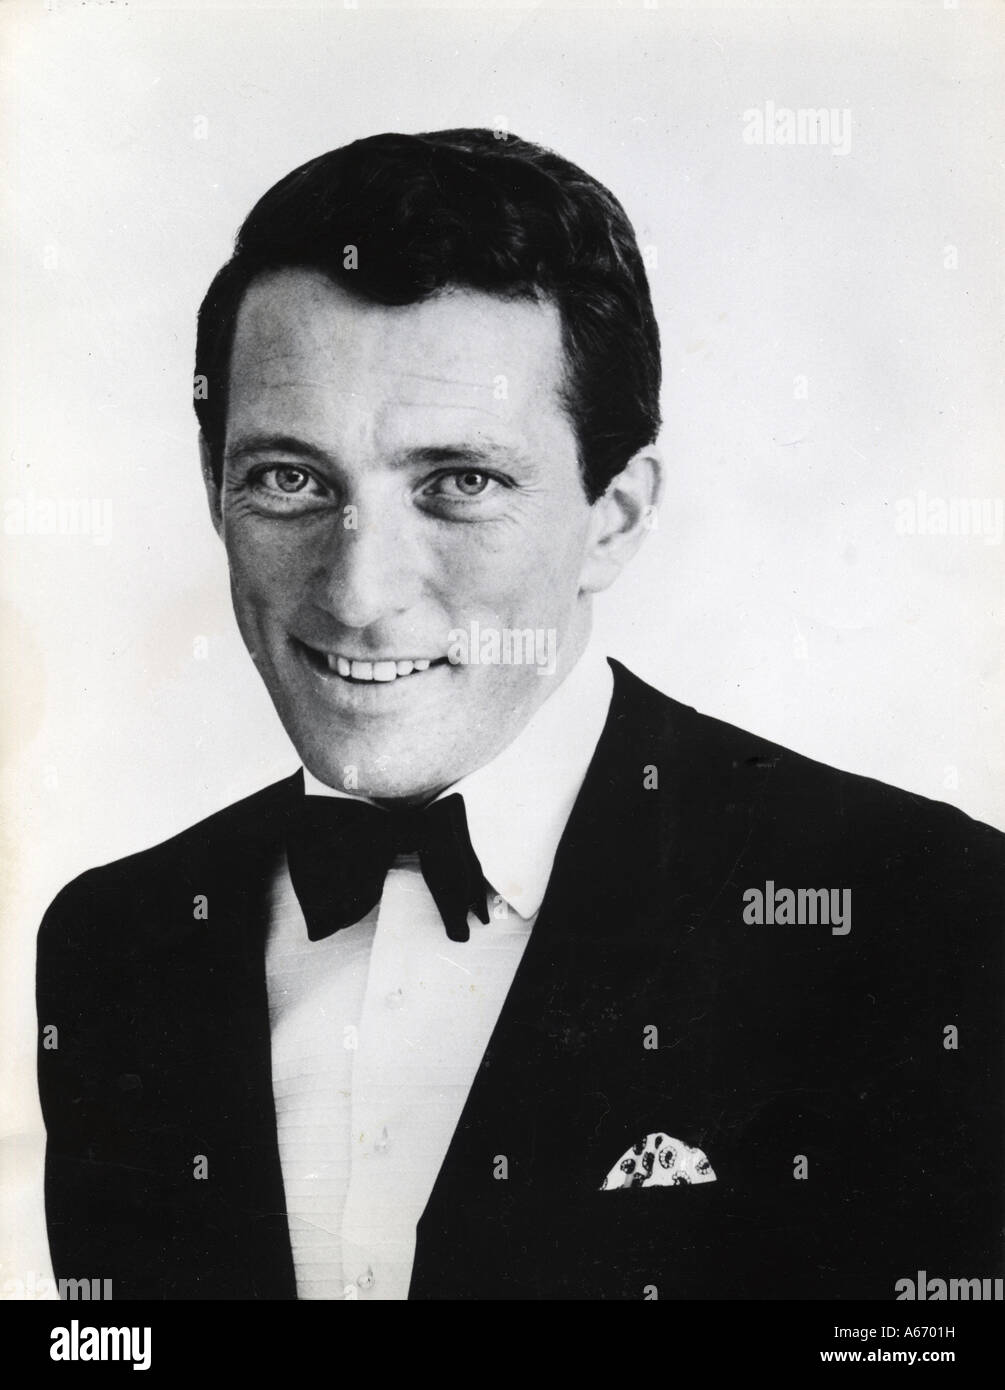 ANDY WILLIAMS US singer - Stock Image